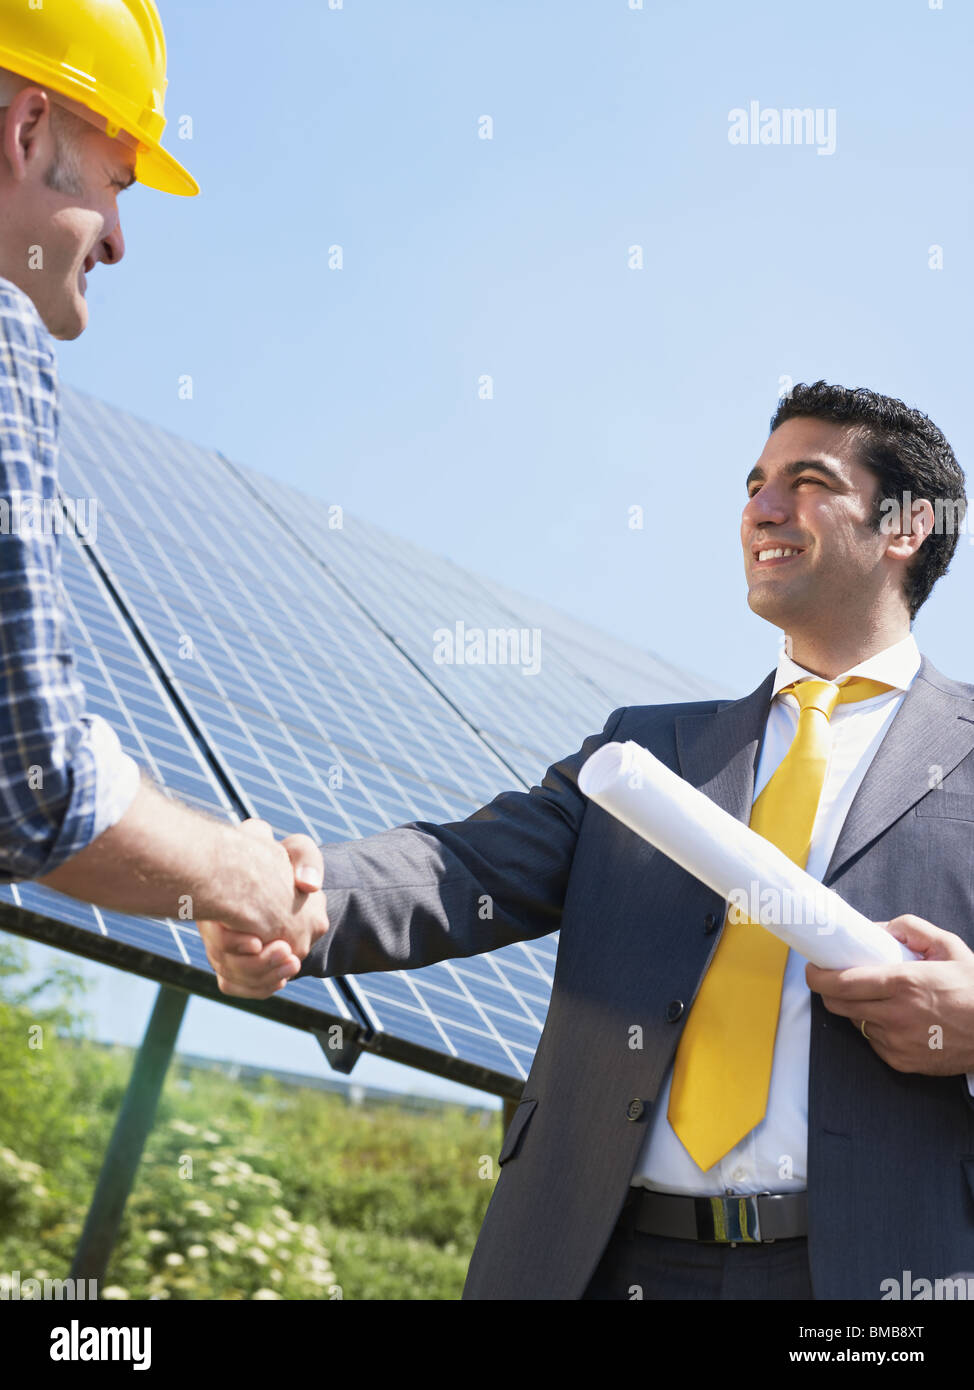 engineer and manual worker shaking hands near solar panels - Stock Image